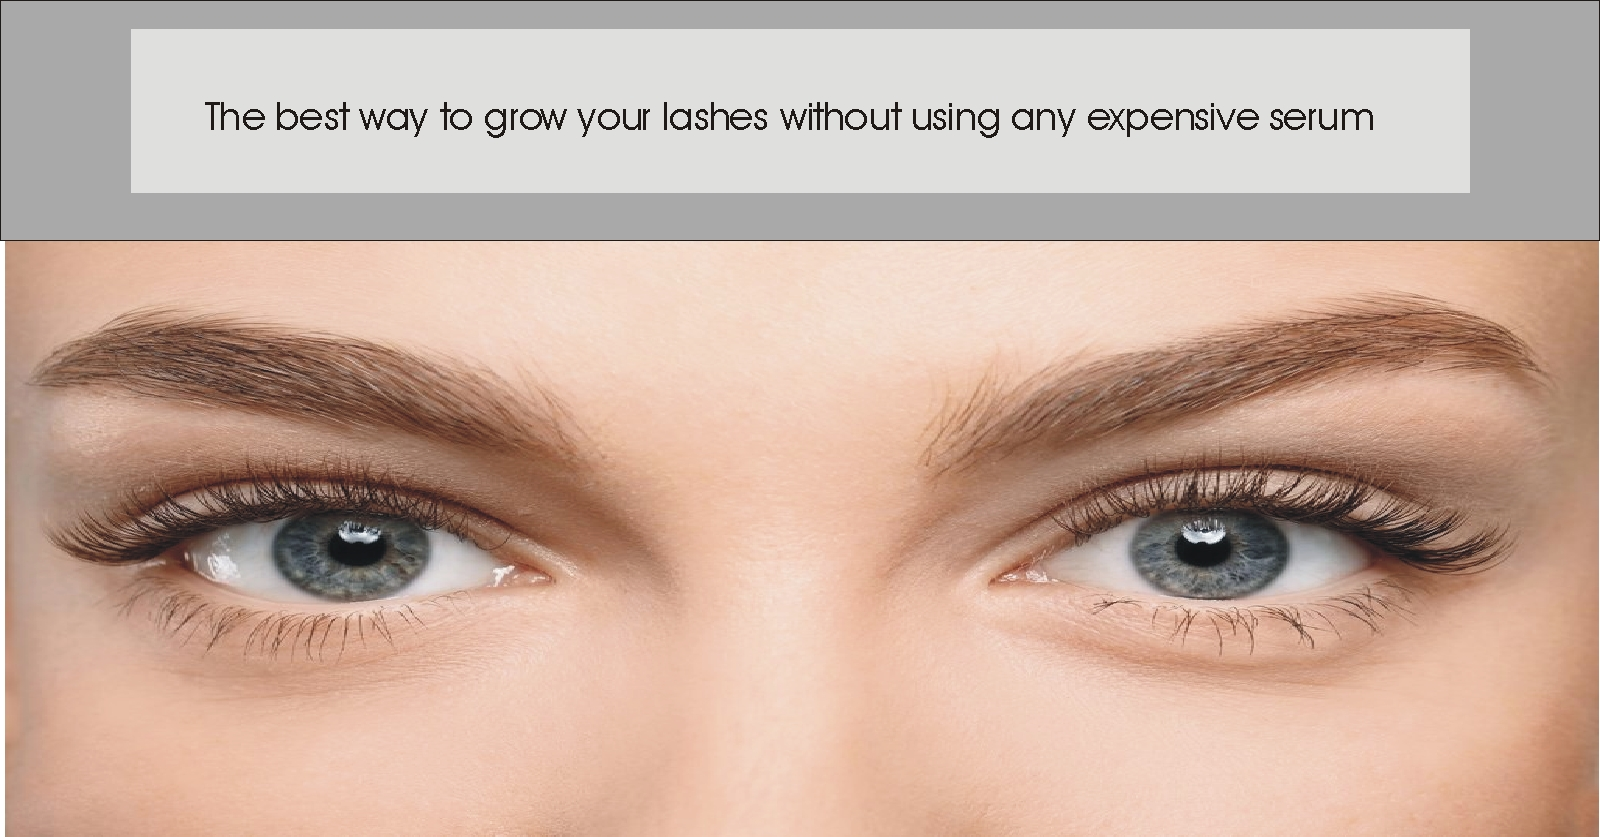 The best way to grow your lashes without using any expensive serum